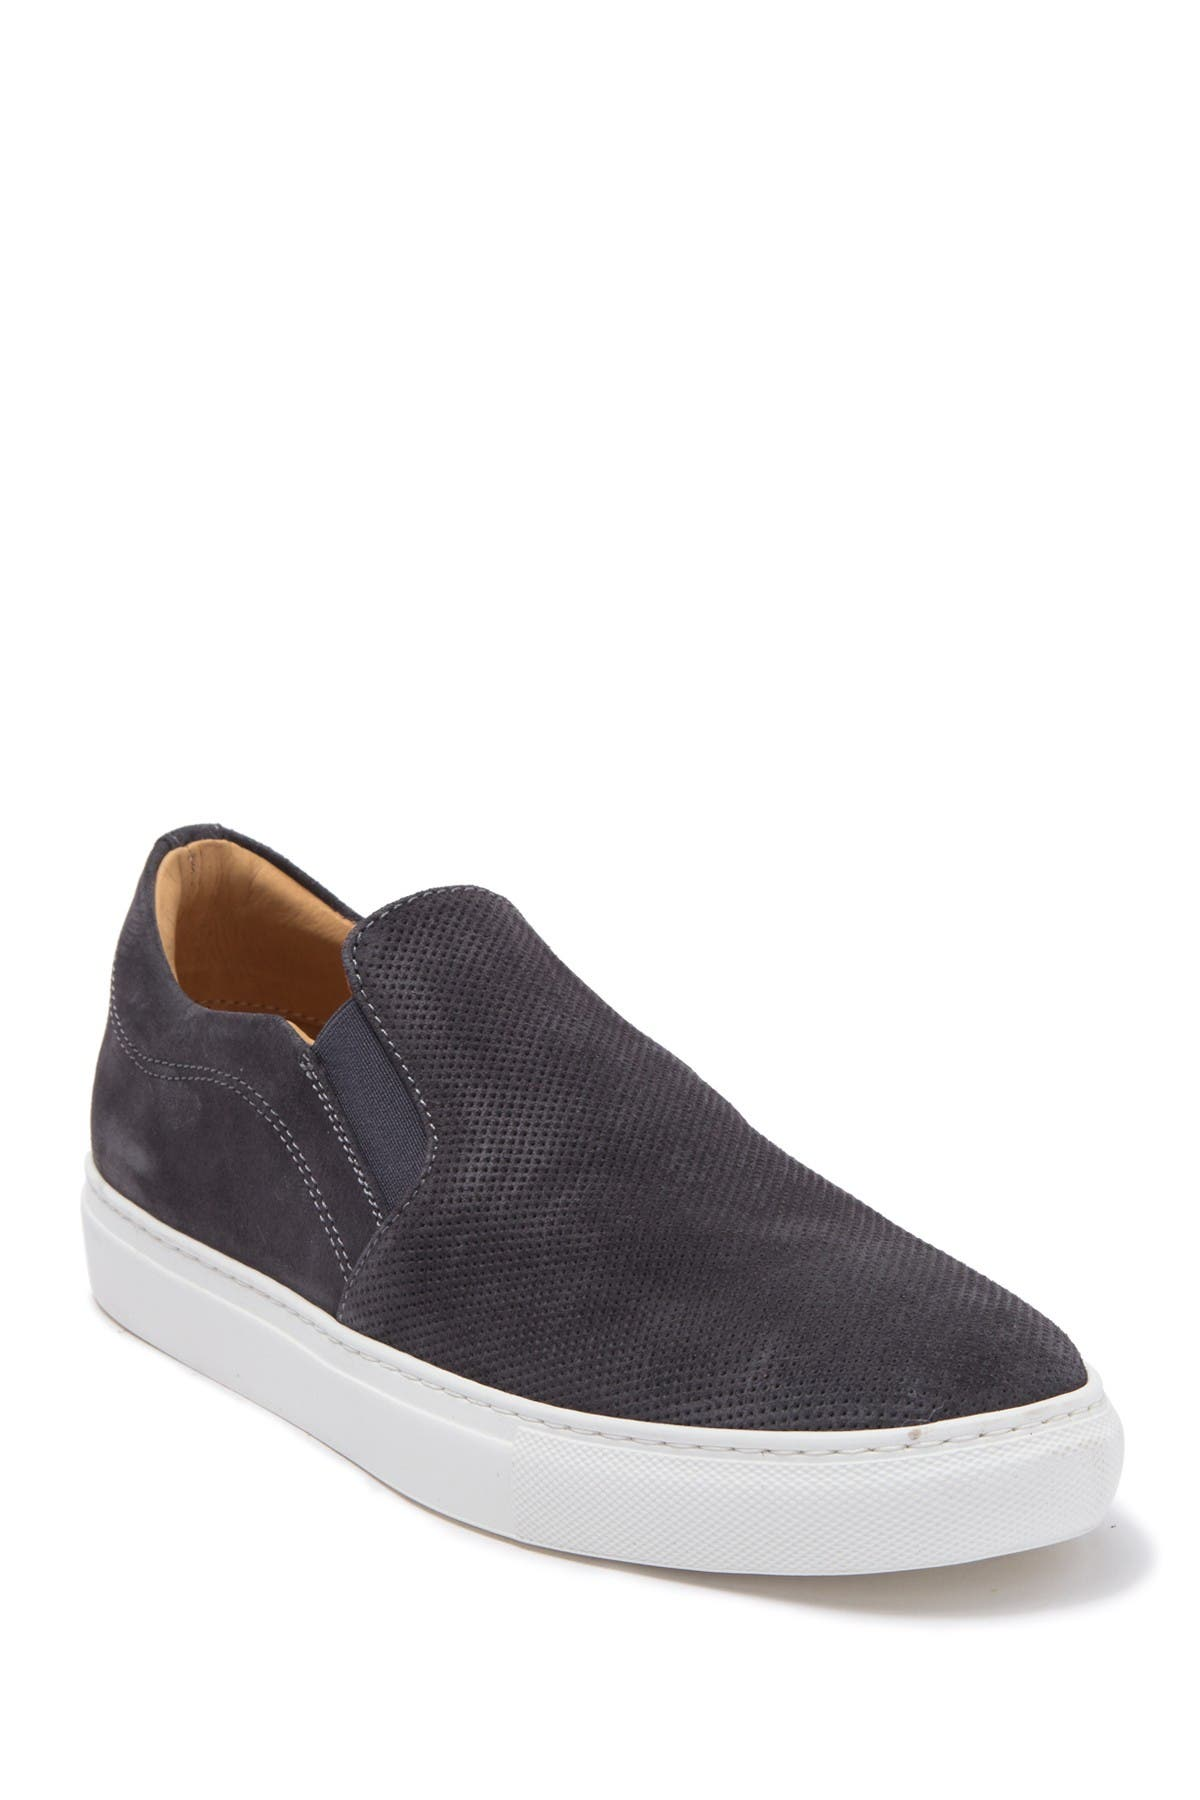 Image of To Boot New York Arlo Suede Slip-On Sneaker